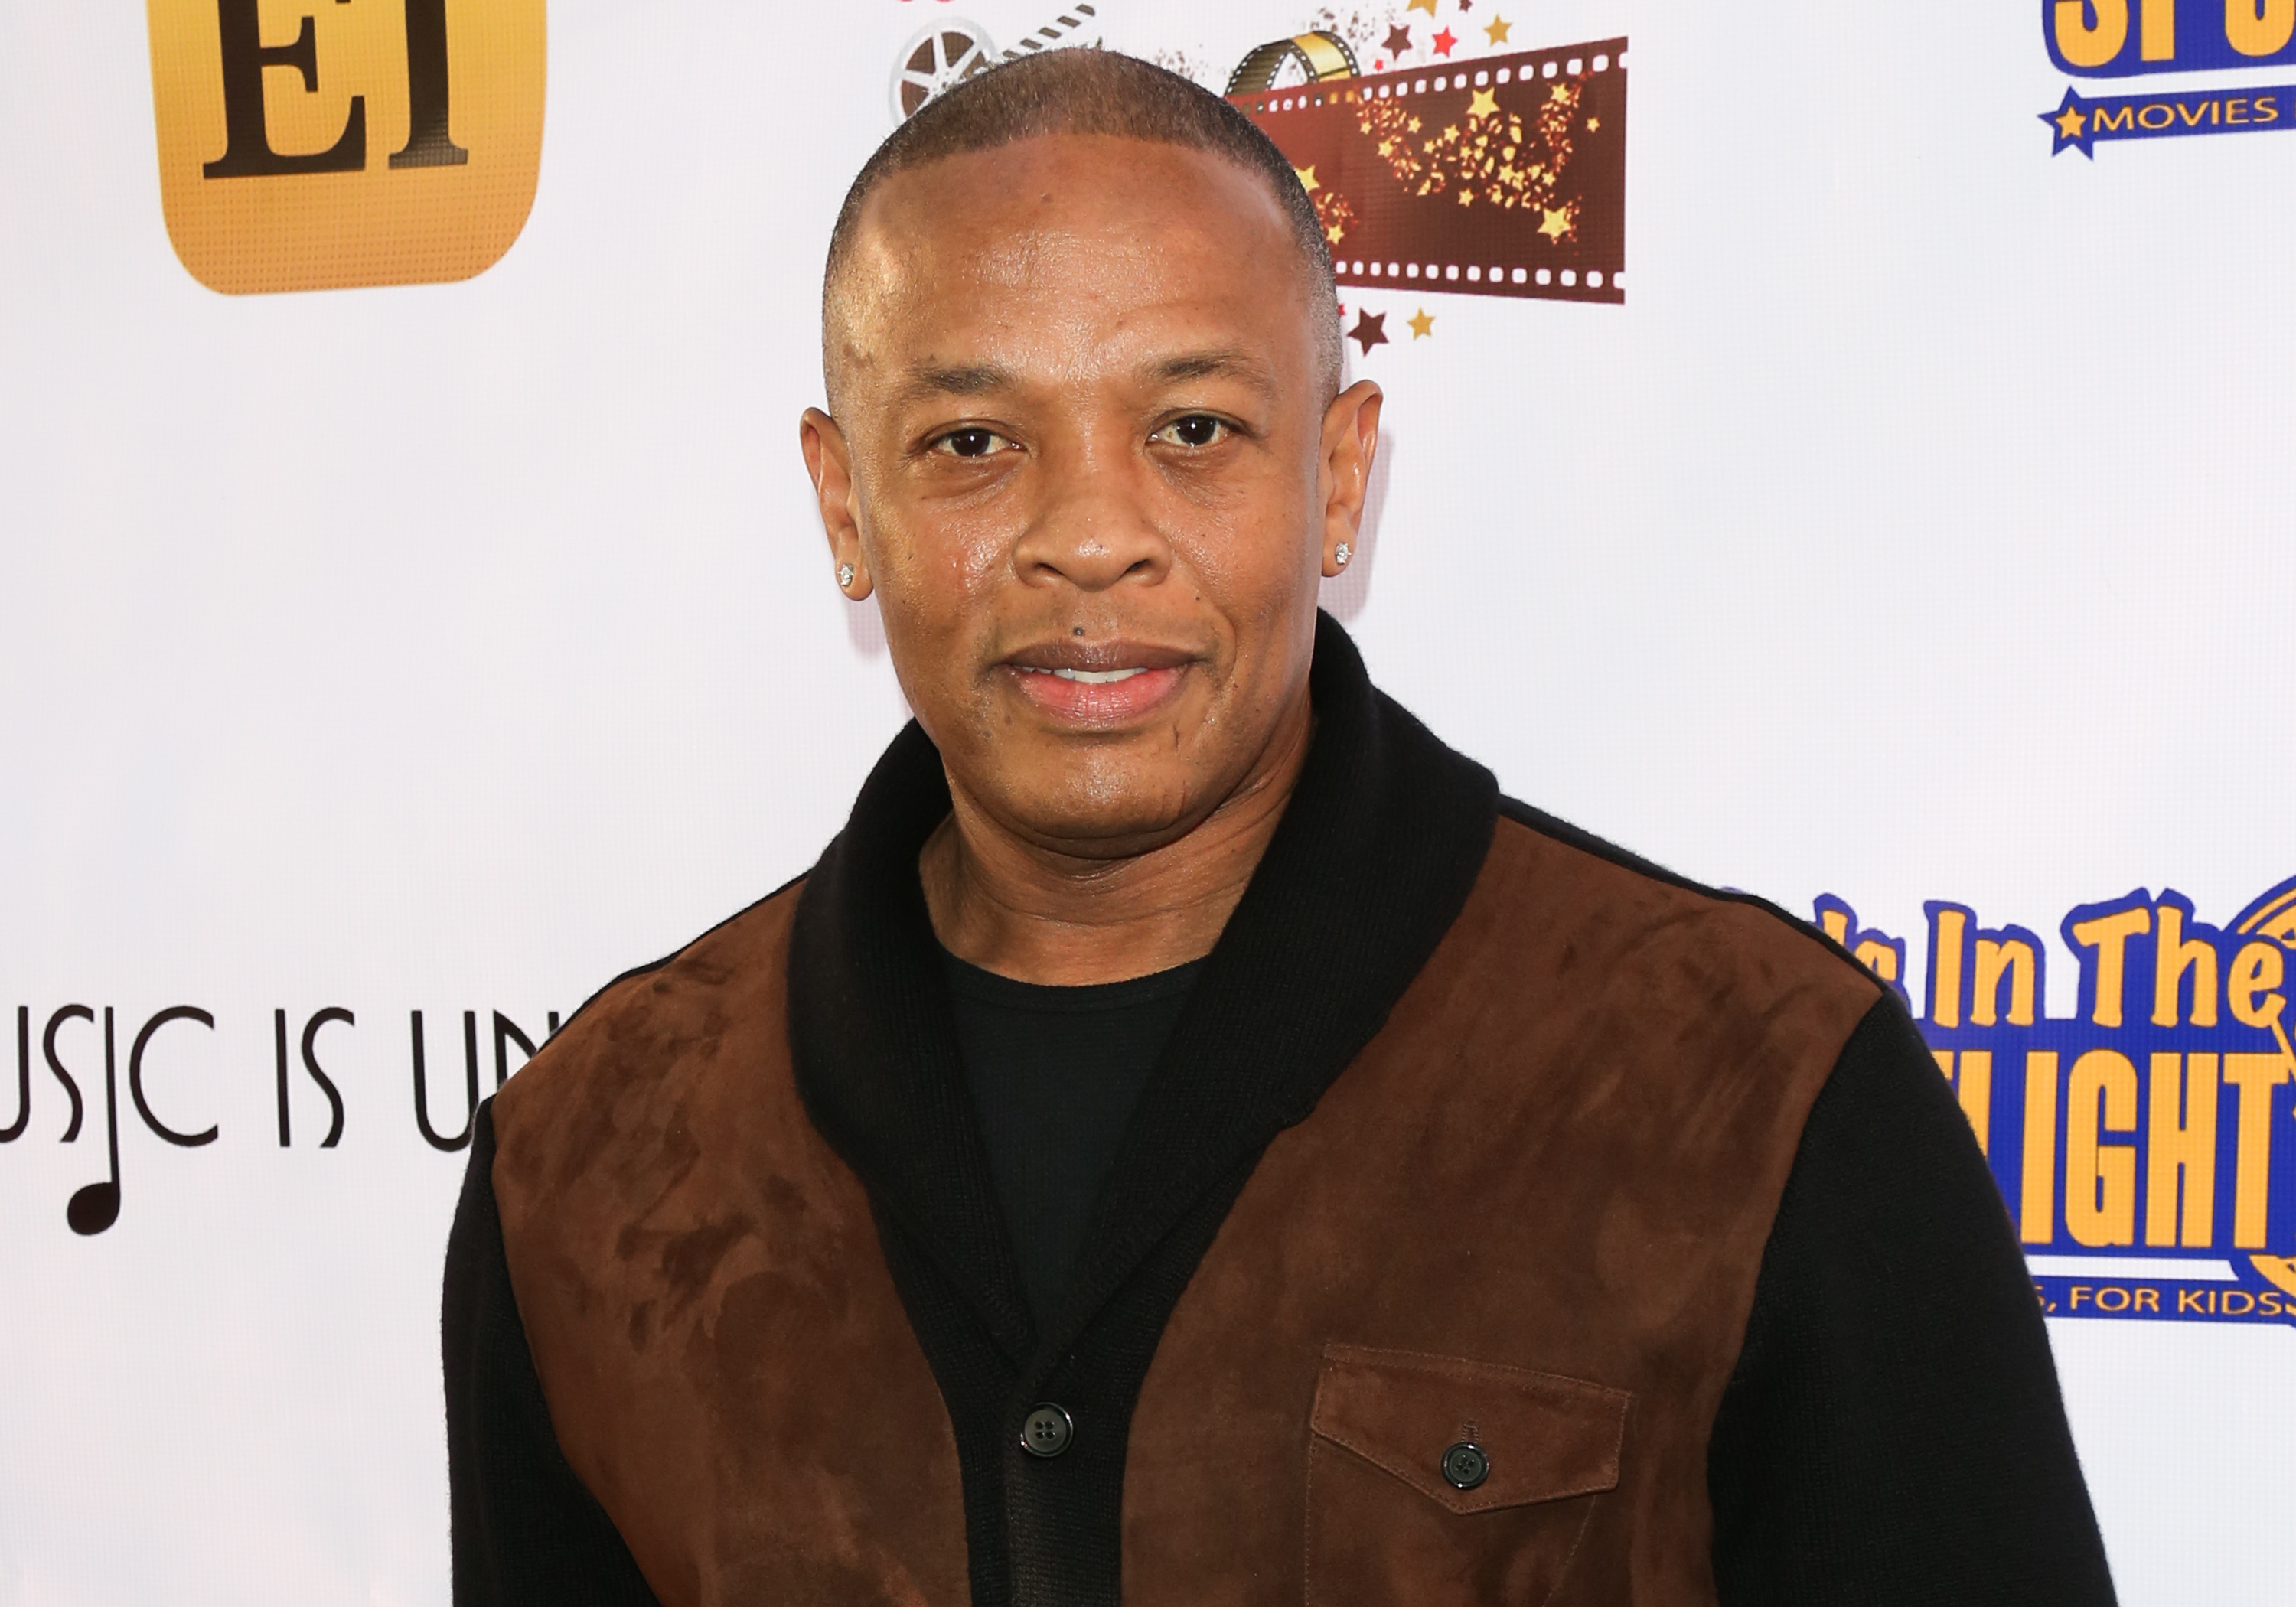 Rapper / Producer Dr. Dre attends the Kids In The Spotlight's Movies By Kids, For Kids Film Awards at Fox Studios on November 7, 2015 in Los Angeles, California.